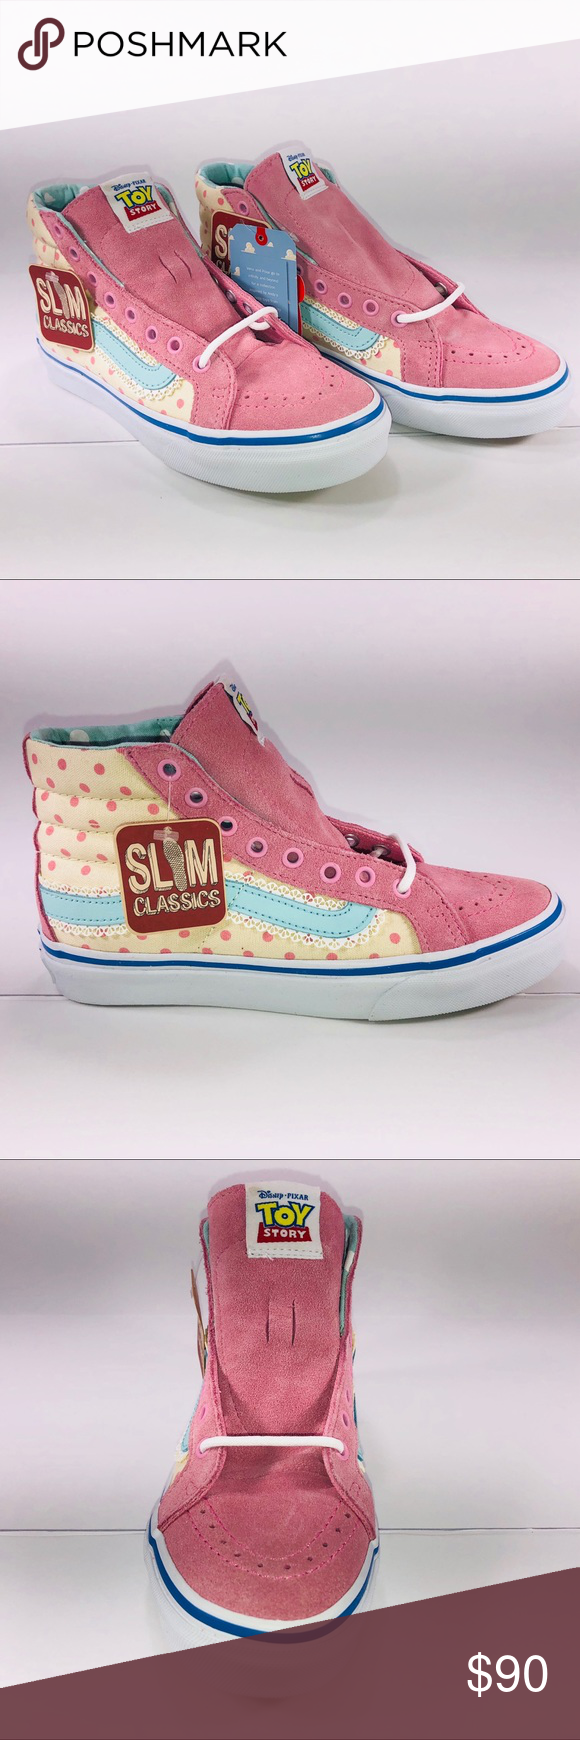 Vans SK8 Hi Slim Toy Story Bo Peep   White Sneaker New With Damaged Box See  Pictures For Details. Vans SK8 Hi Slim Toy Story Lil Bo Peep Multlcolor    True ... f2f292e35